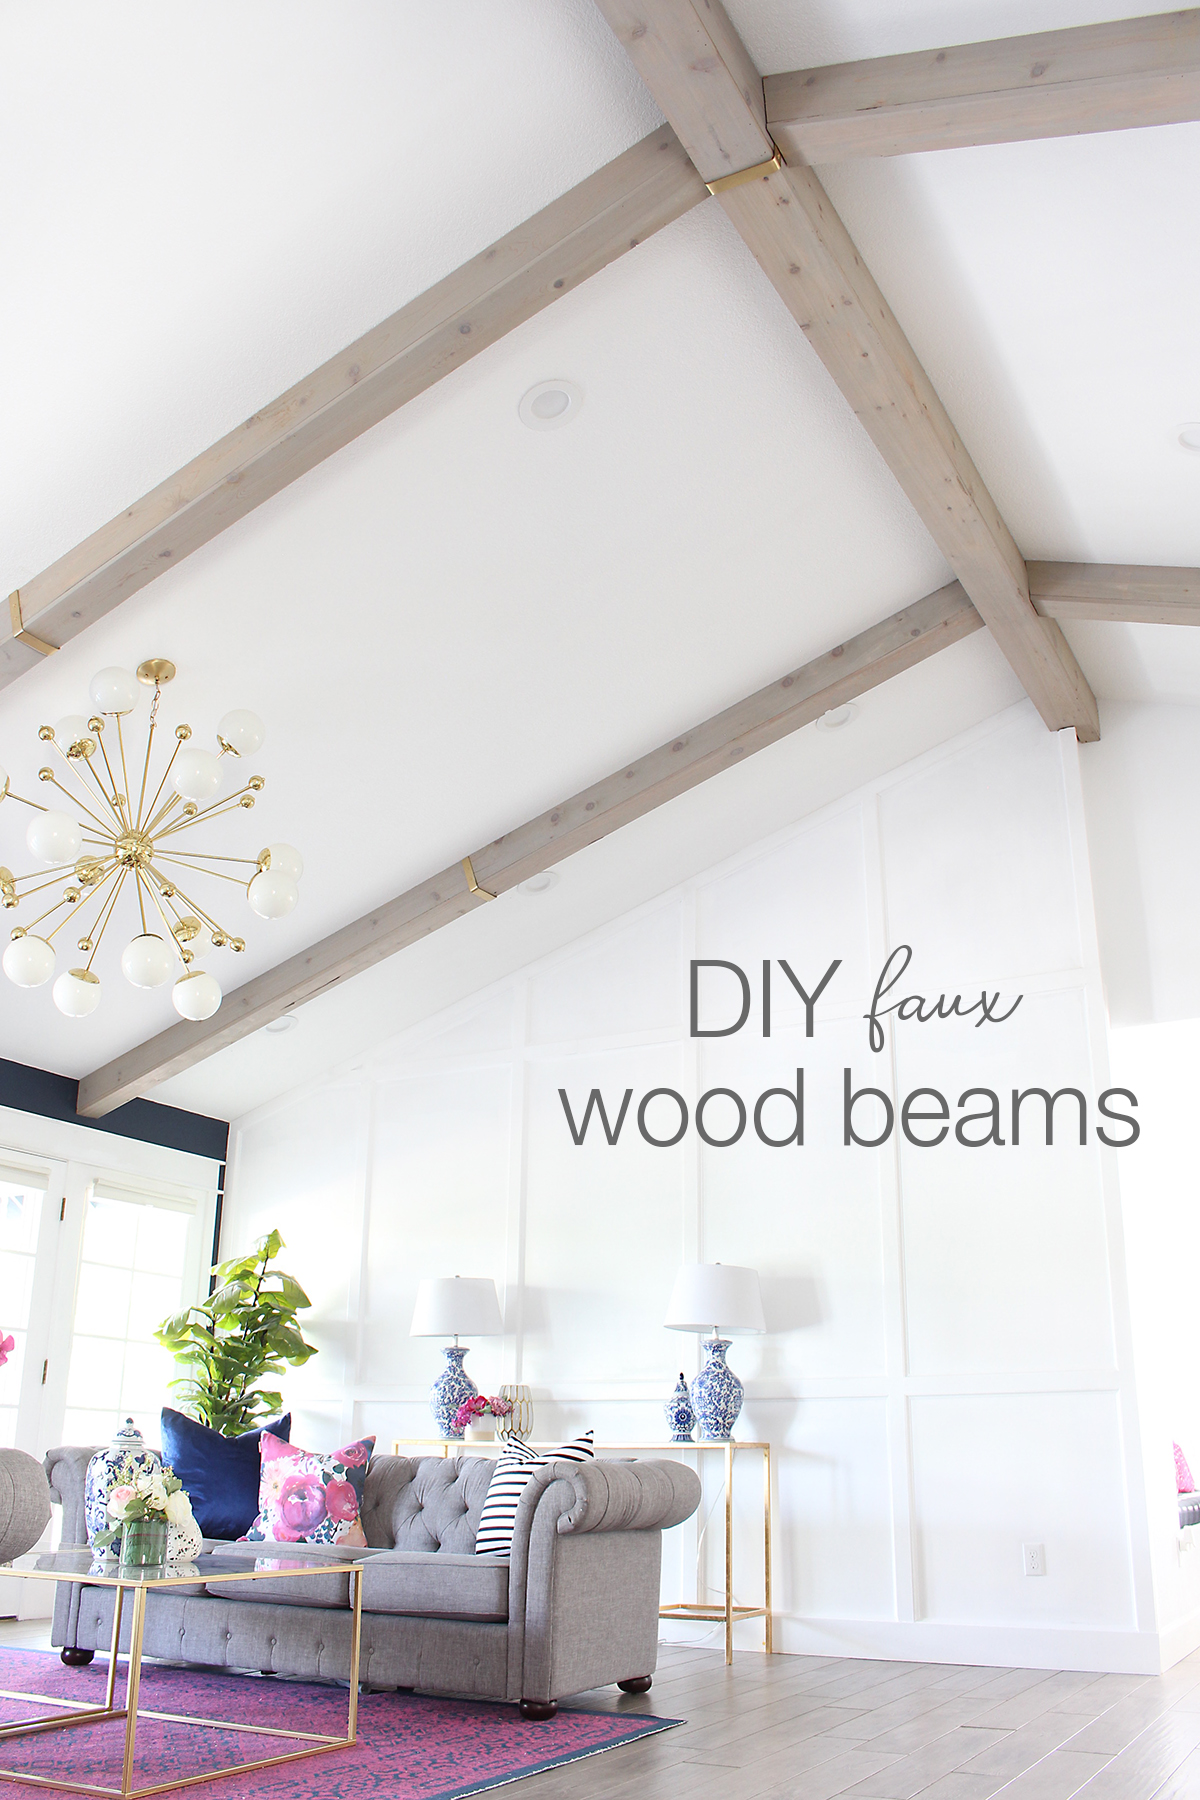 Tutorial for how to make DIY Faux Wood Beams